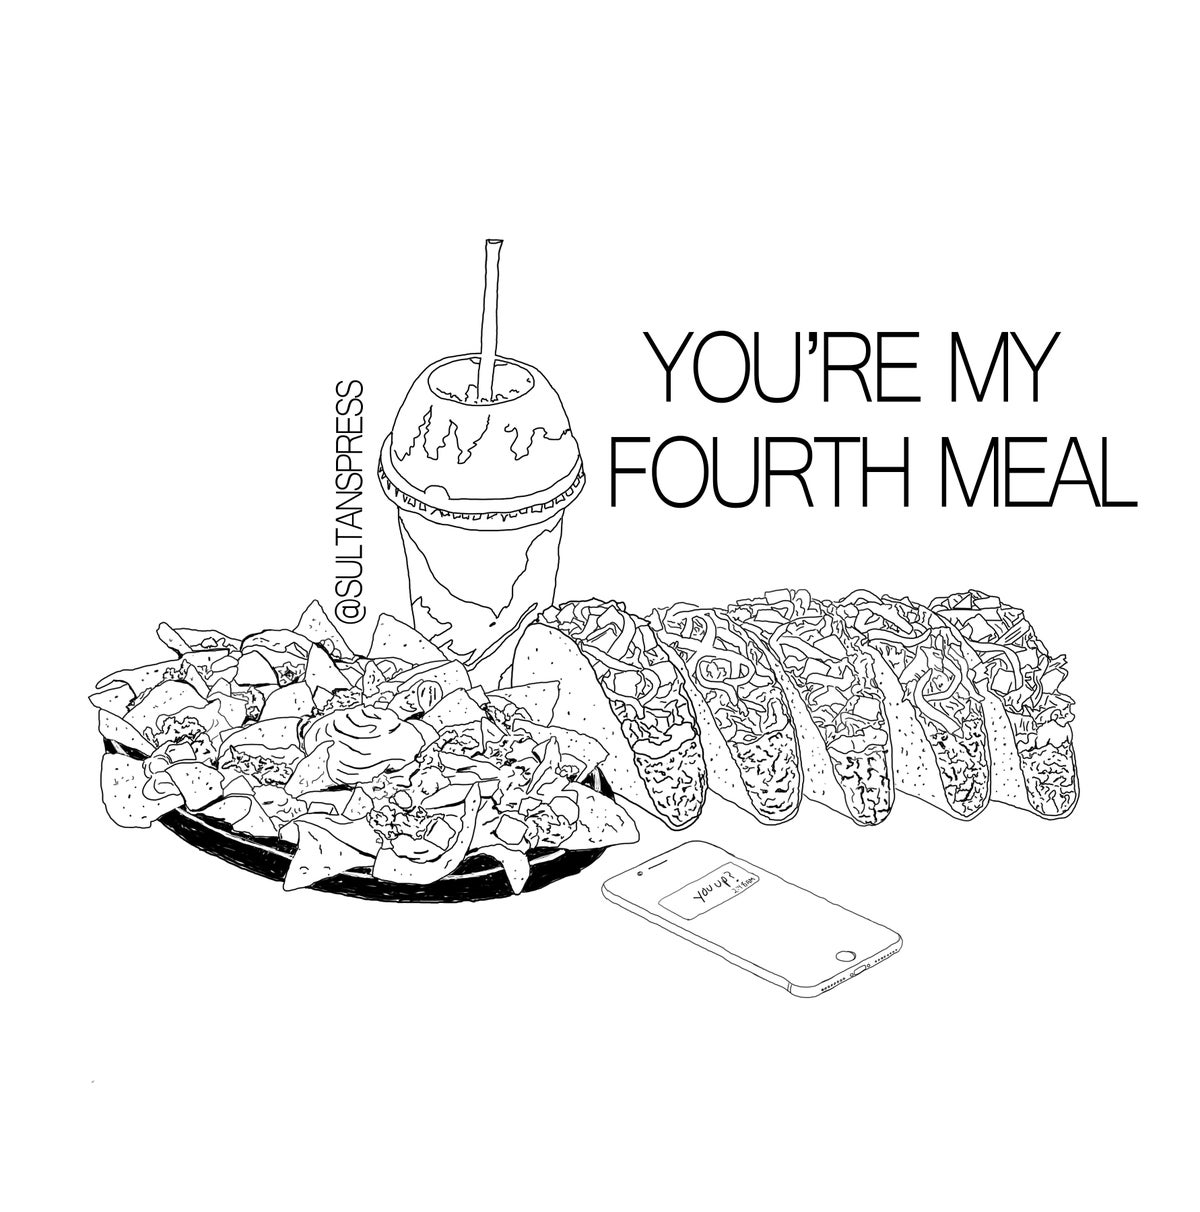 Image of Fourth Meal Card